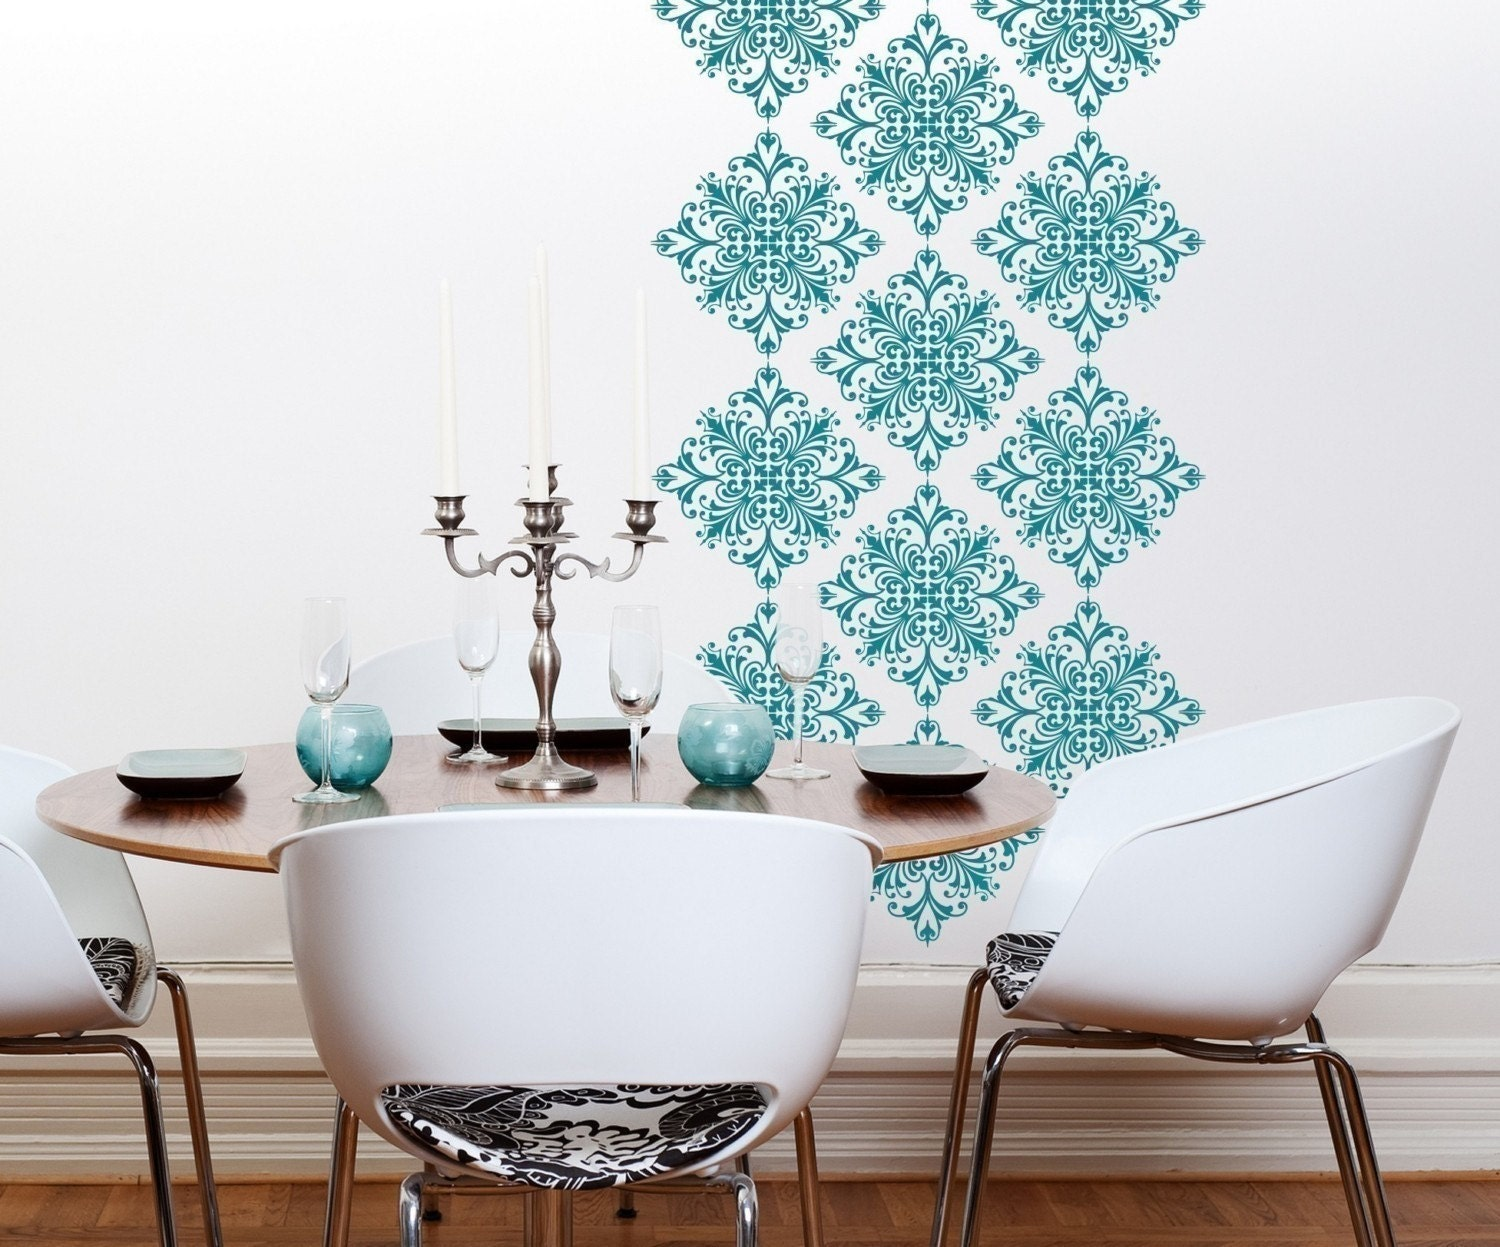 Vinyl wall decals scroll damask wall pattern 18 graphics zoom amipublicfo Choice Image